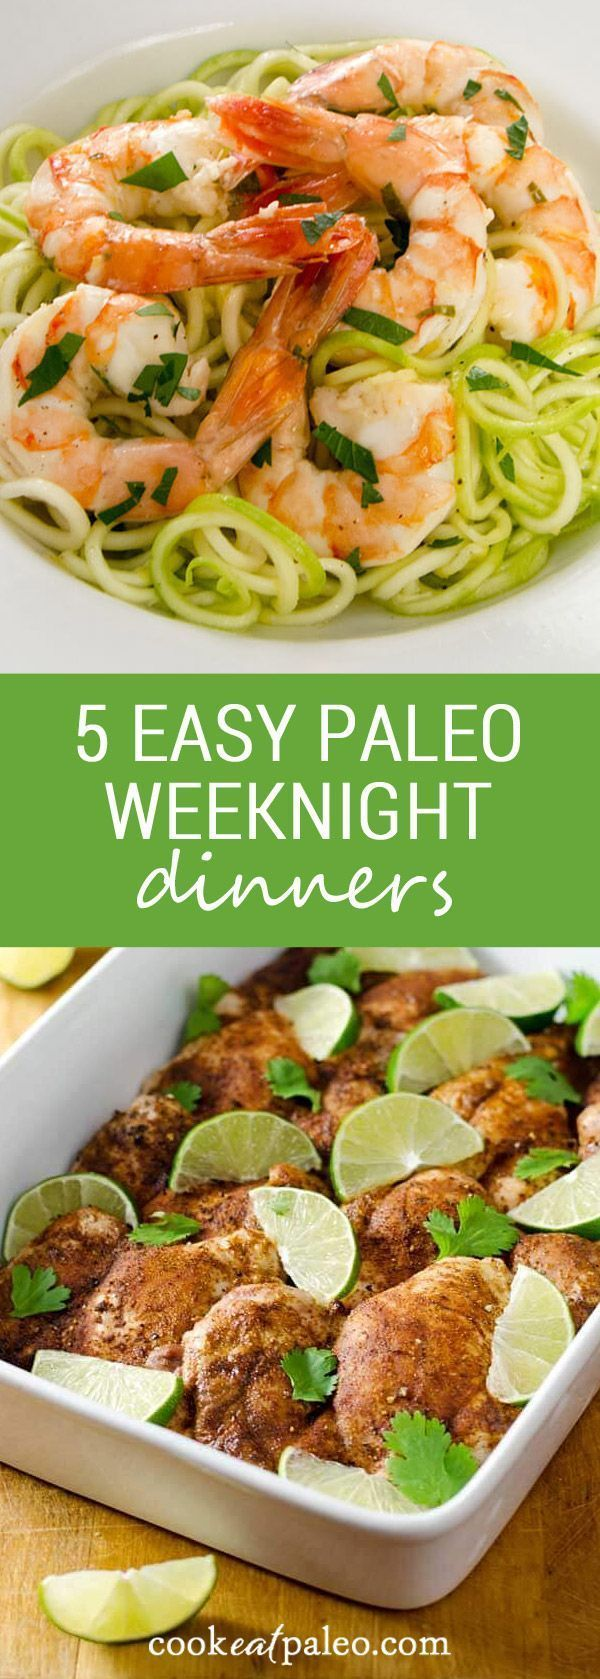 Easy paleo weeknight dinners for when you need to get supper on the table. These go-to recipes make eating paleo every day easier. {gluten-free, grain-free, paleo} ~ http://cookeatpaleo.com (Paleo Meals On The Go)